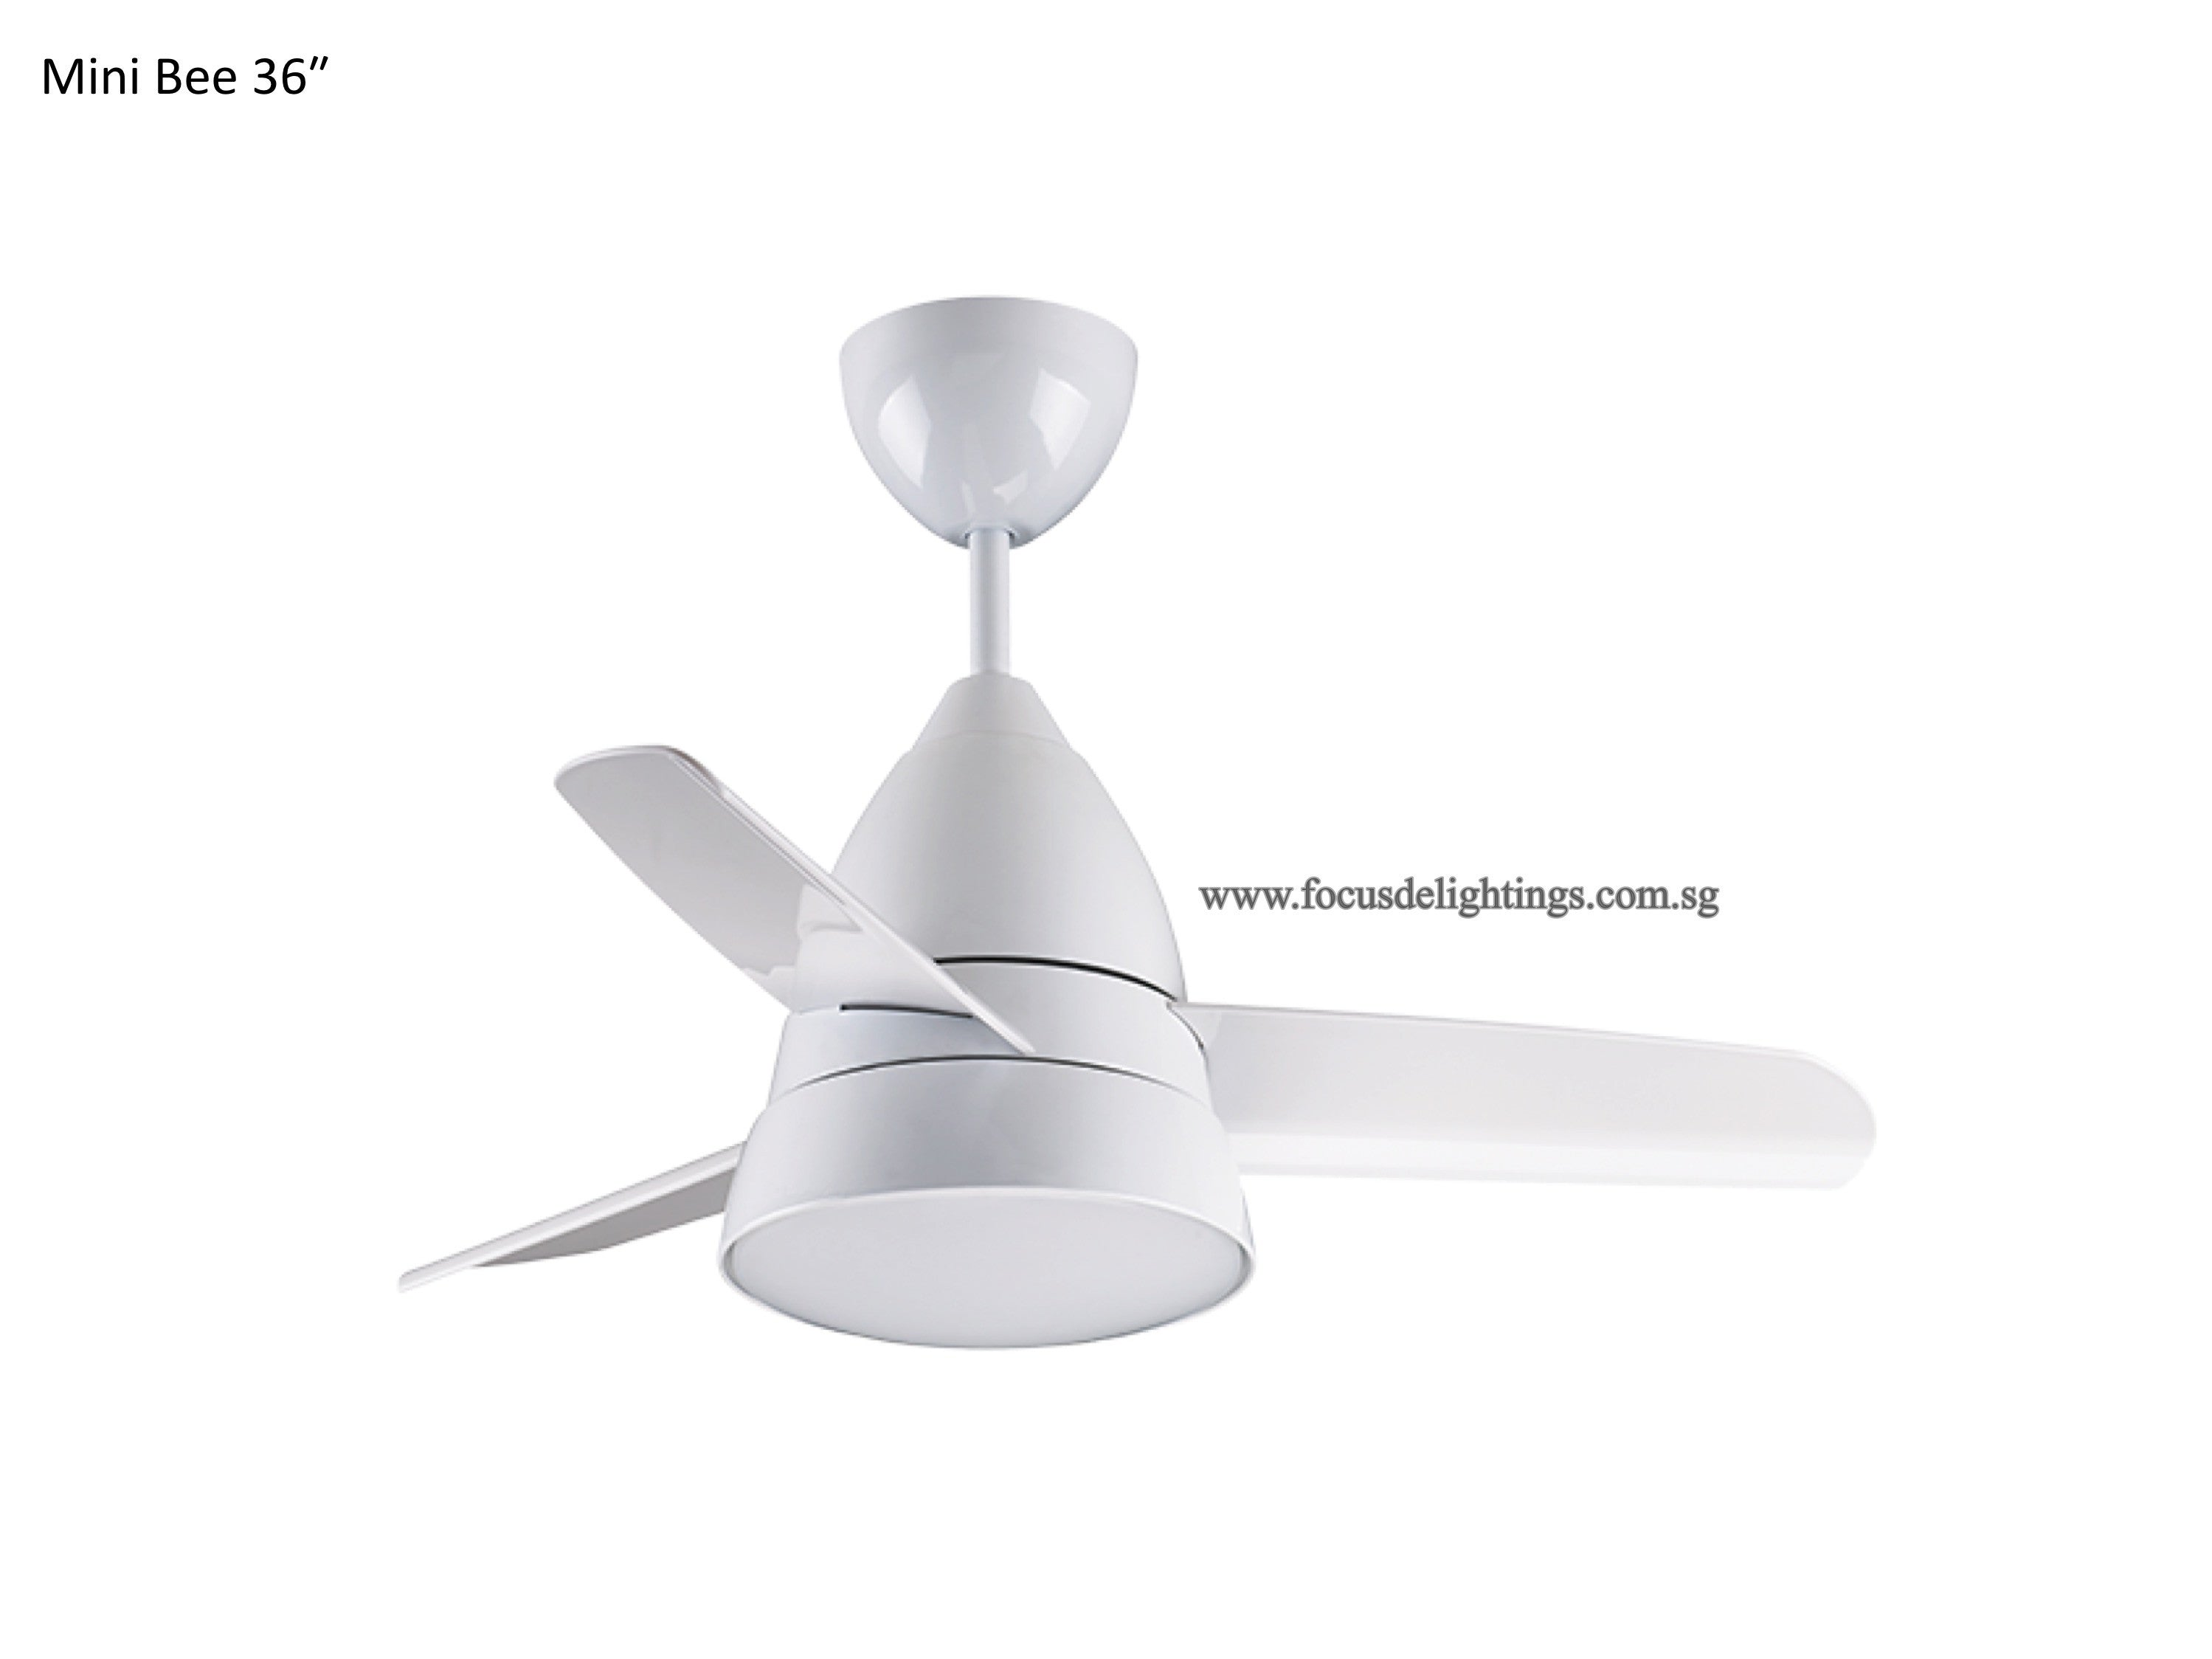 Fanco mini bee 36 ceiling fan focus de lightings fanco mini bee 36 ceiling fan aloadofball Image collections